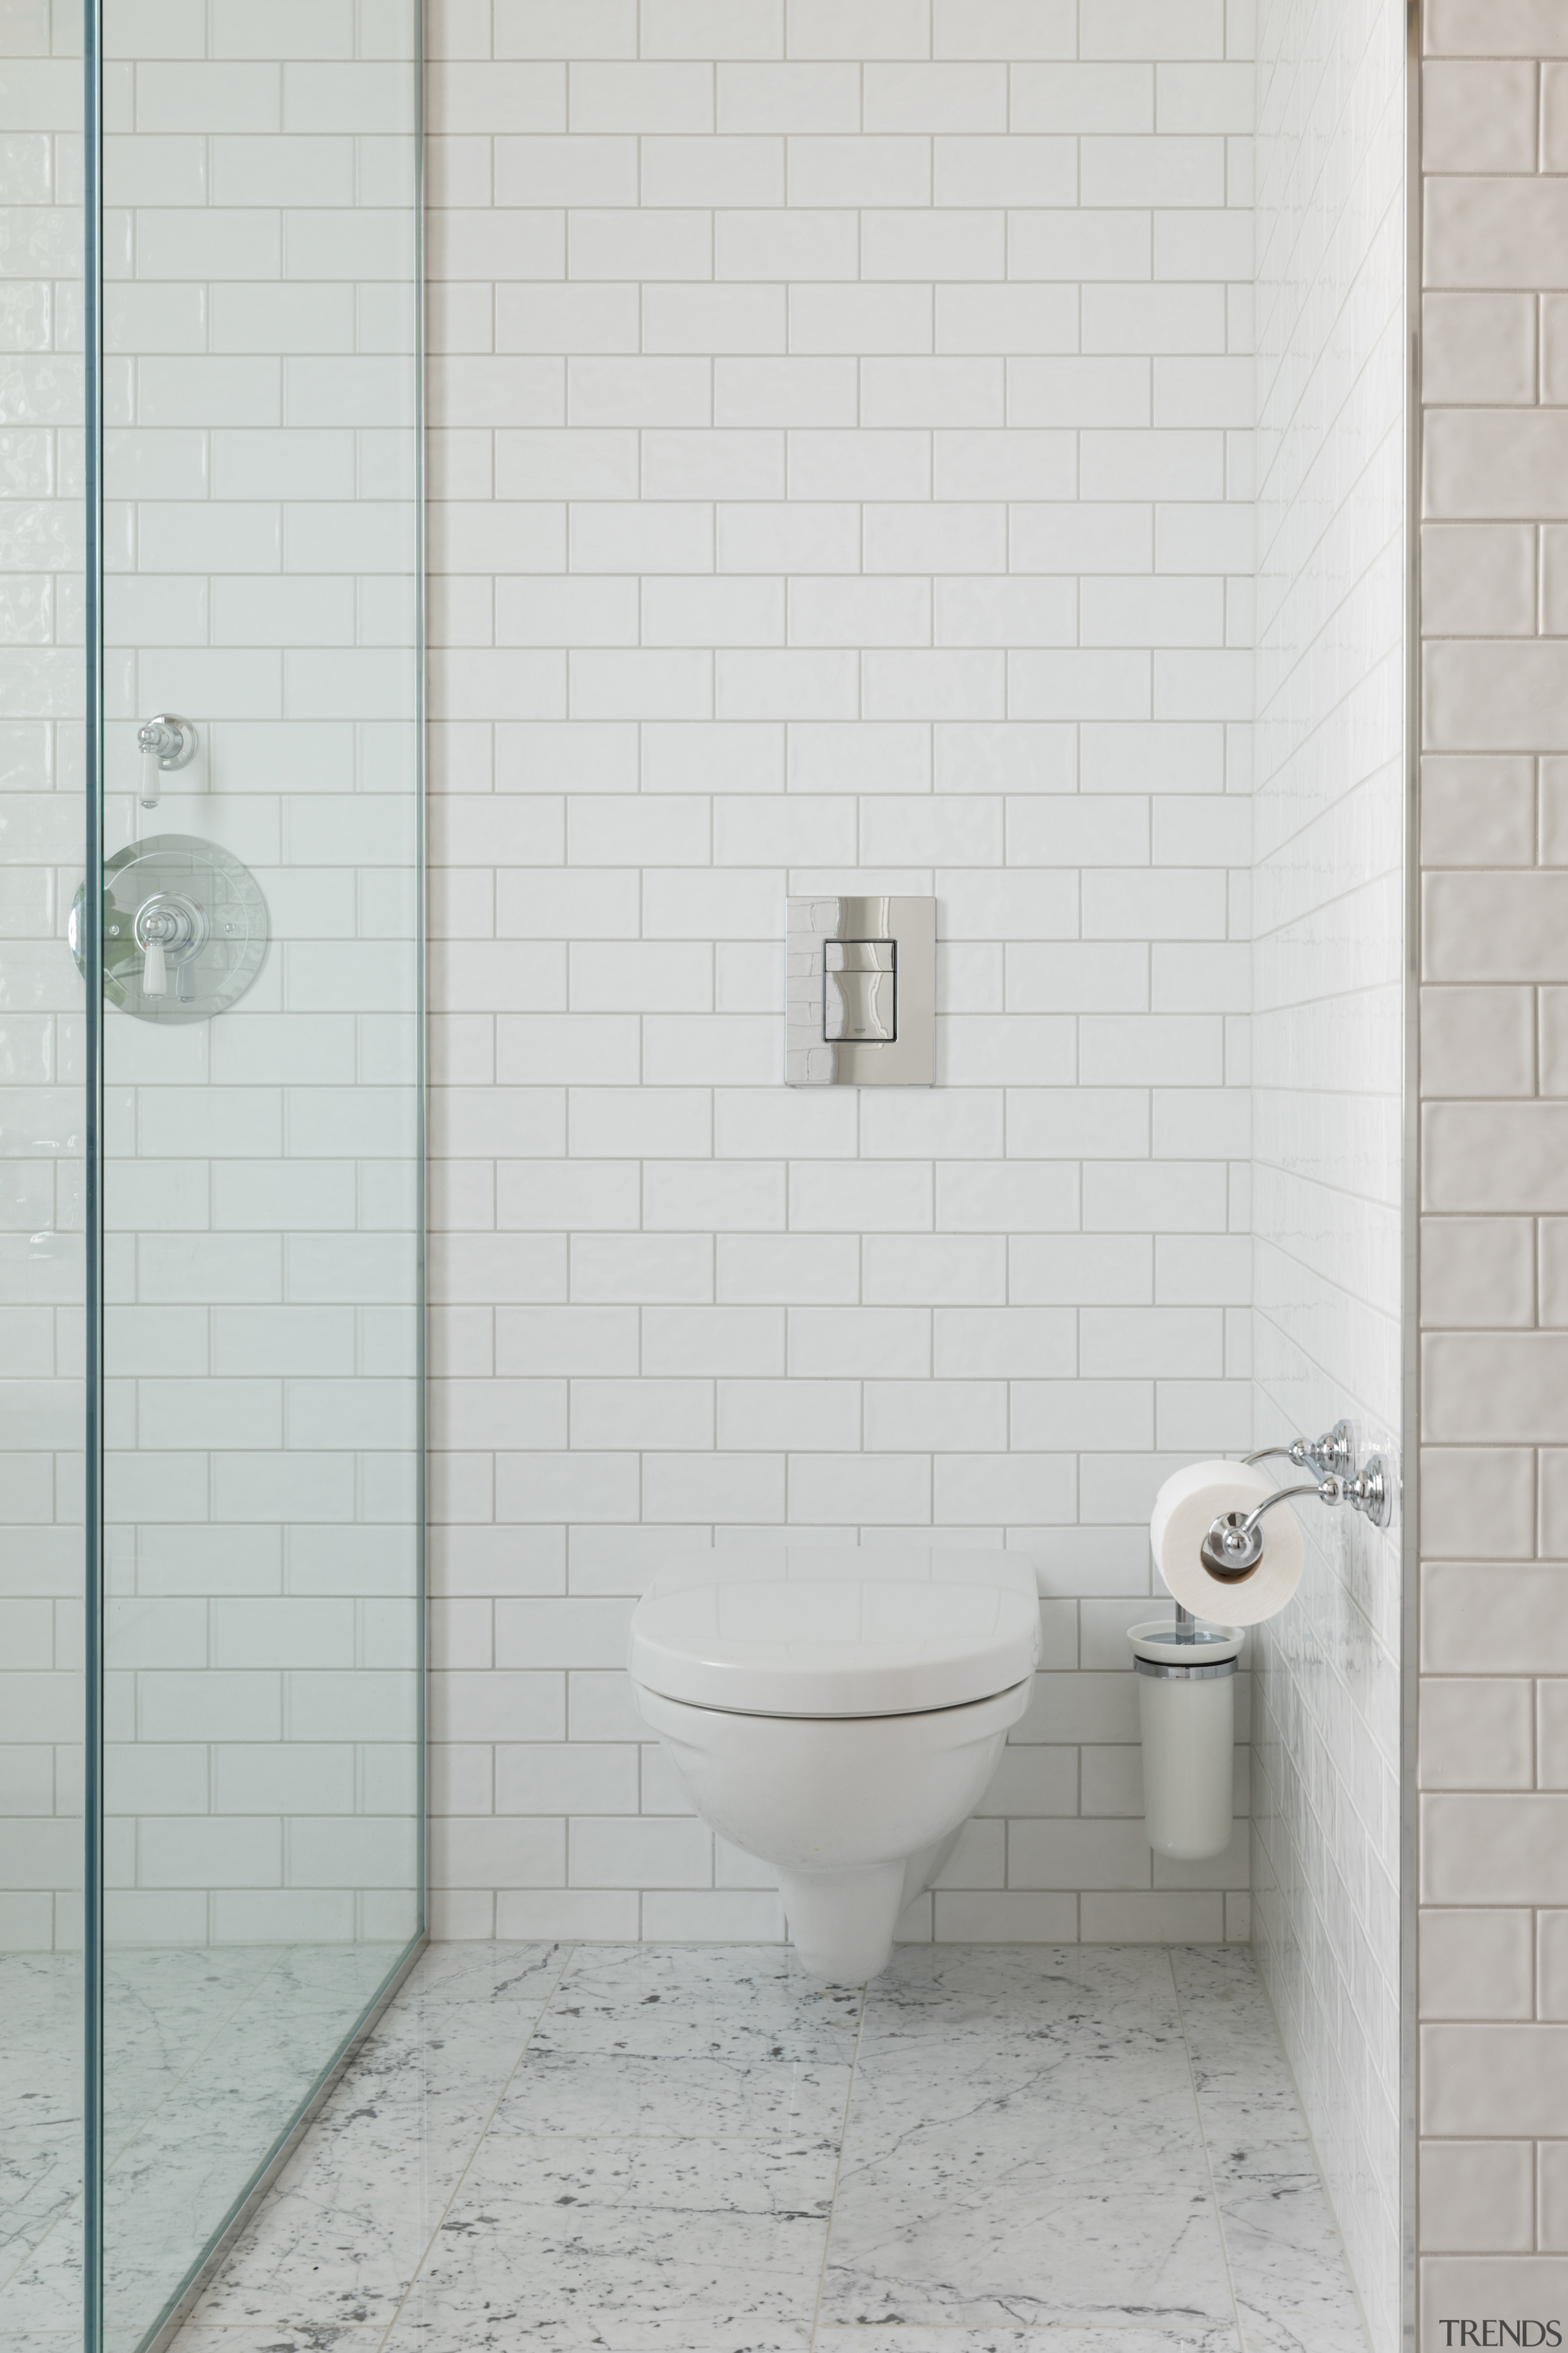 The toilet is tucked in beside the shower